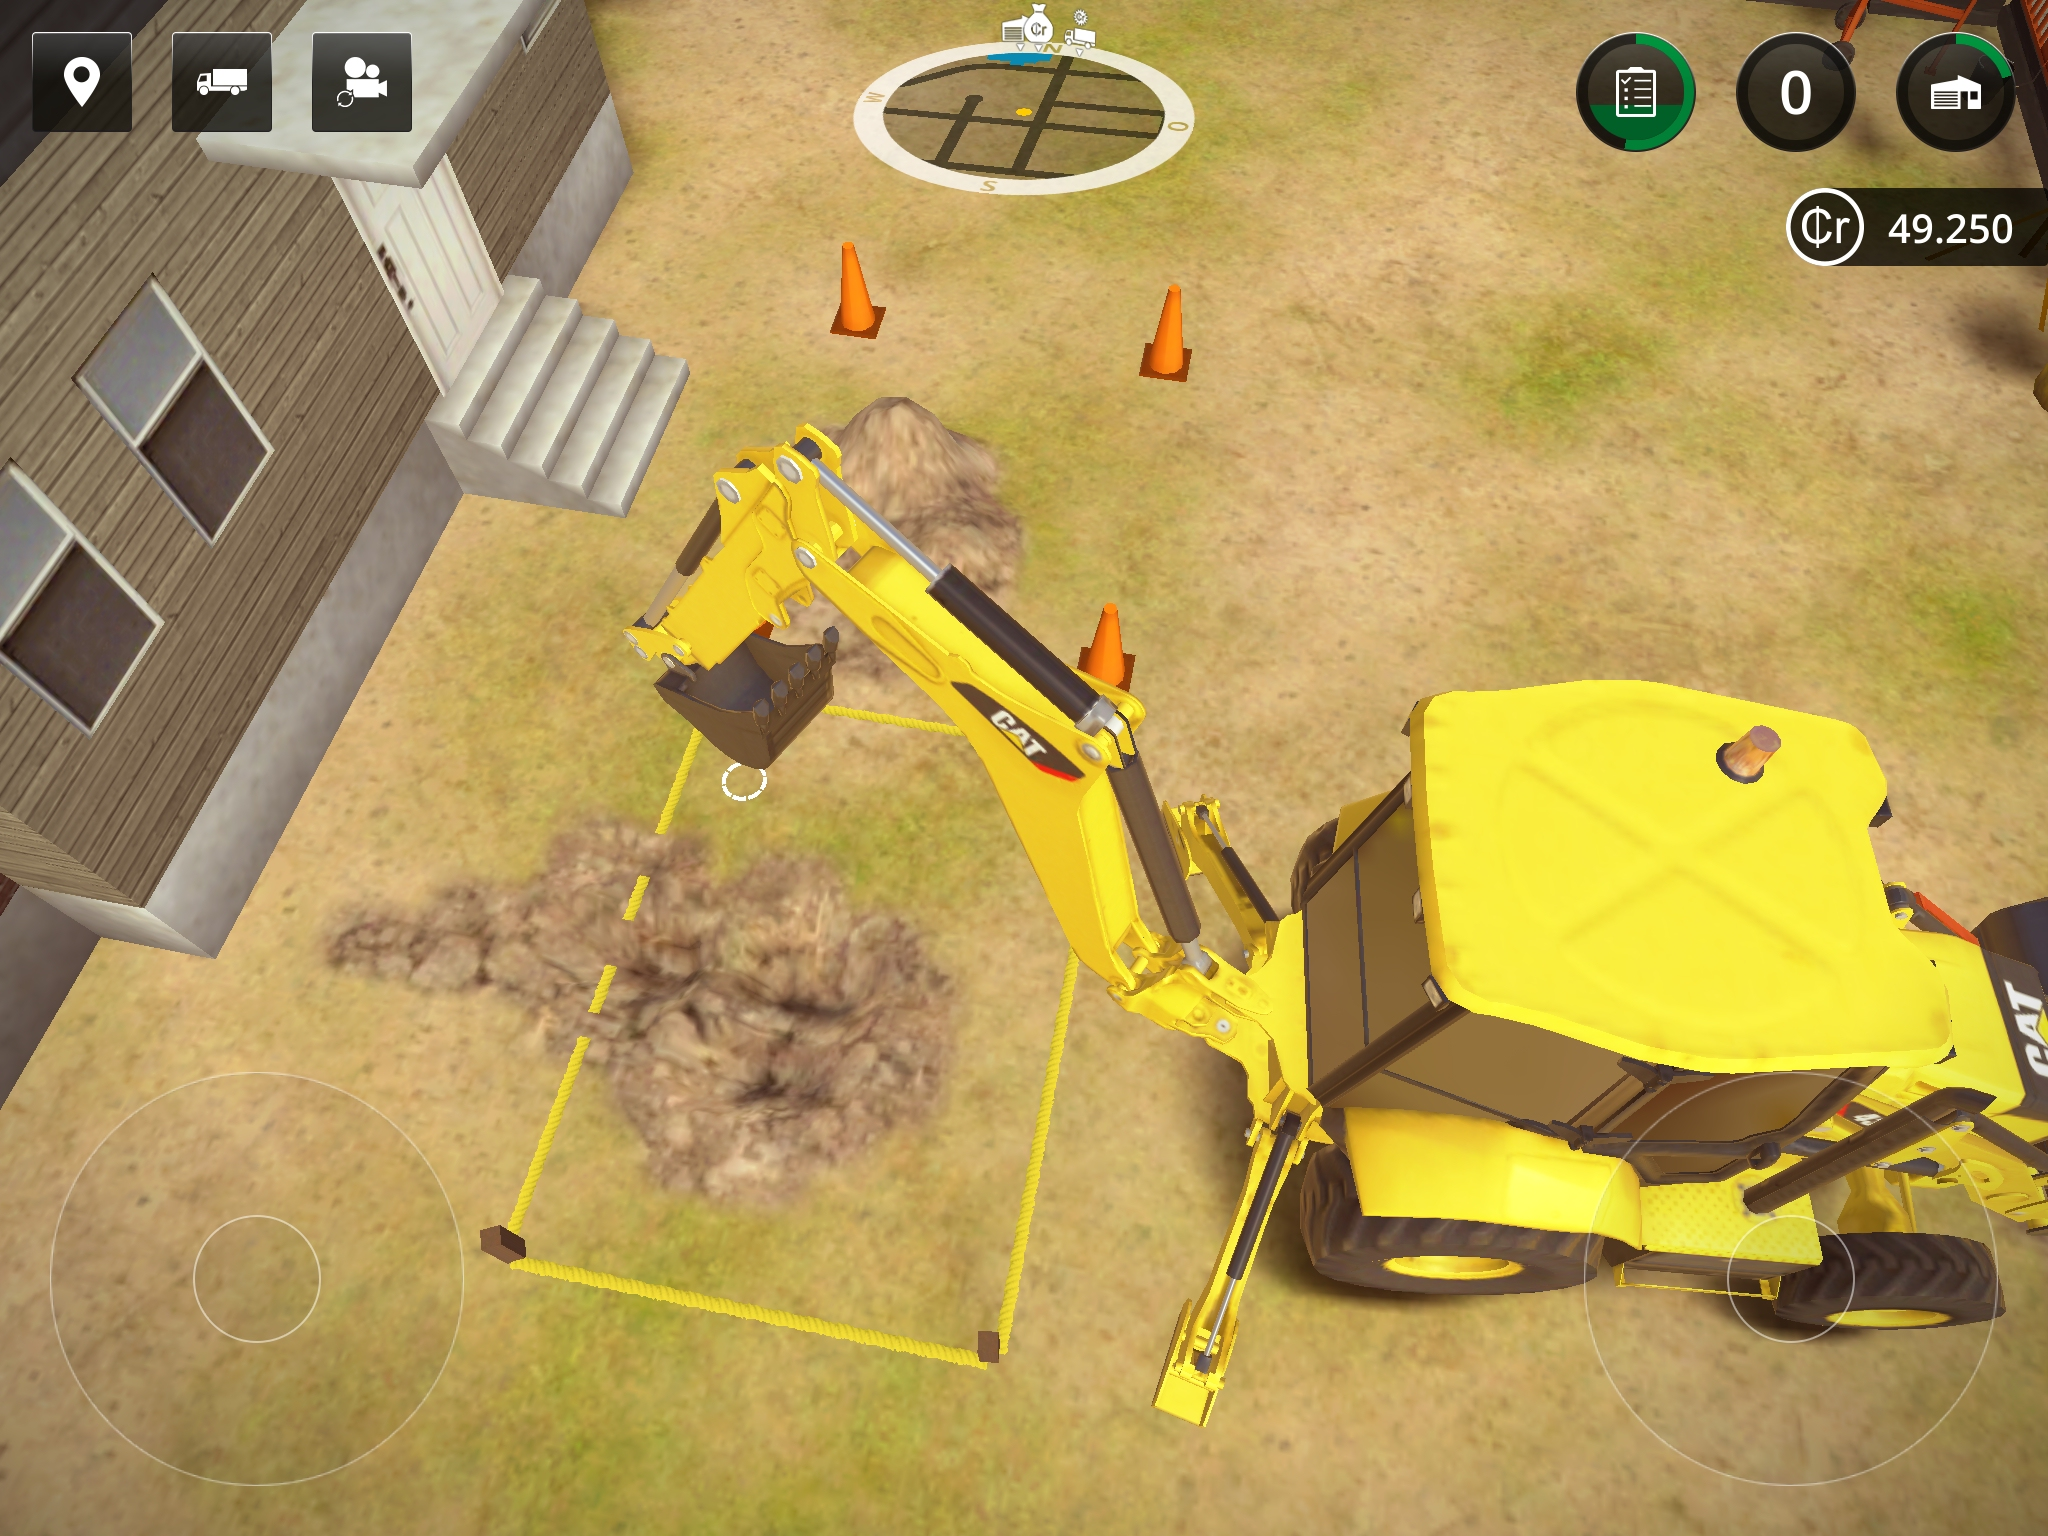 Construction Simulator 2 review - The name says it all